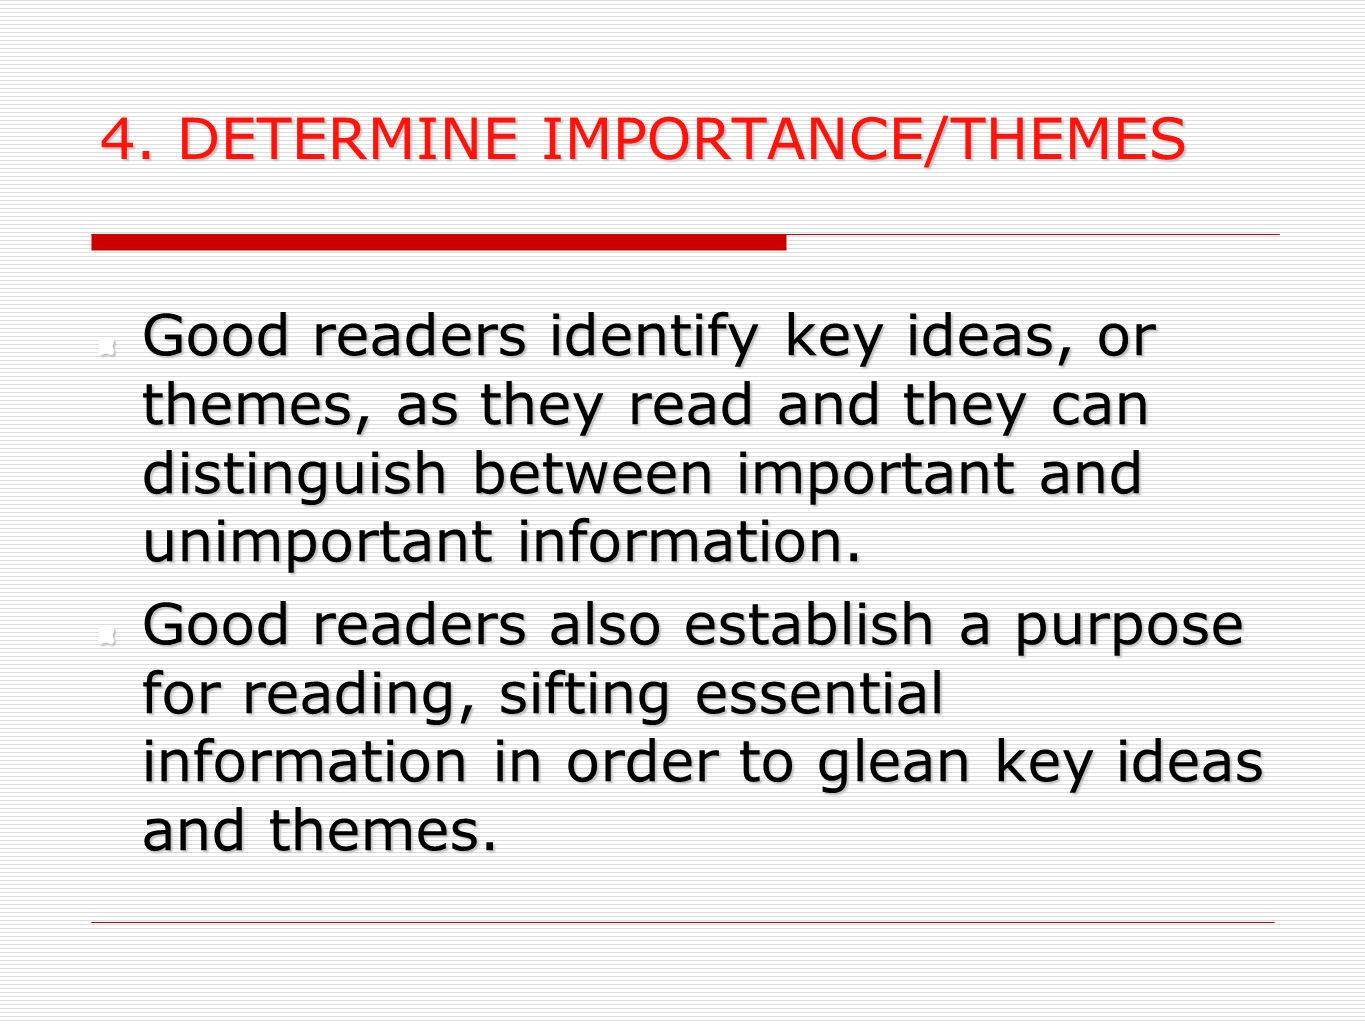 4. DETERMINE IMPORTANCE/THEMES